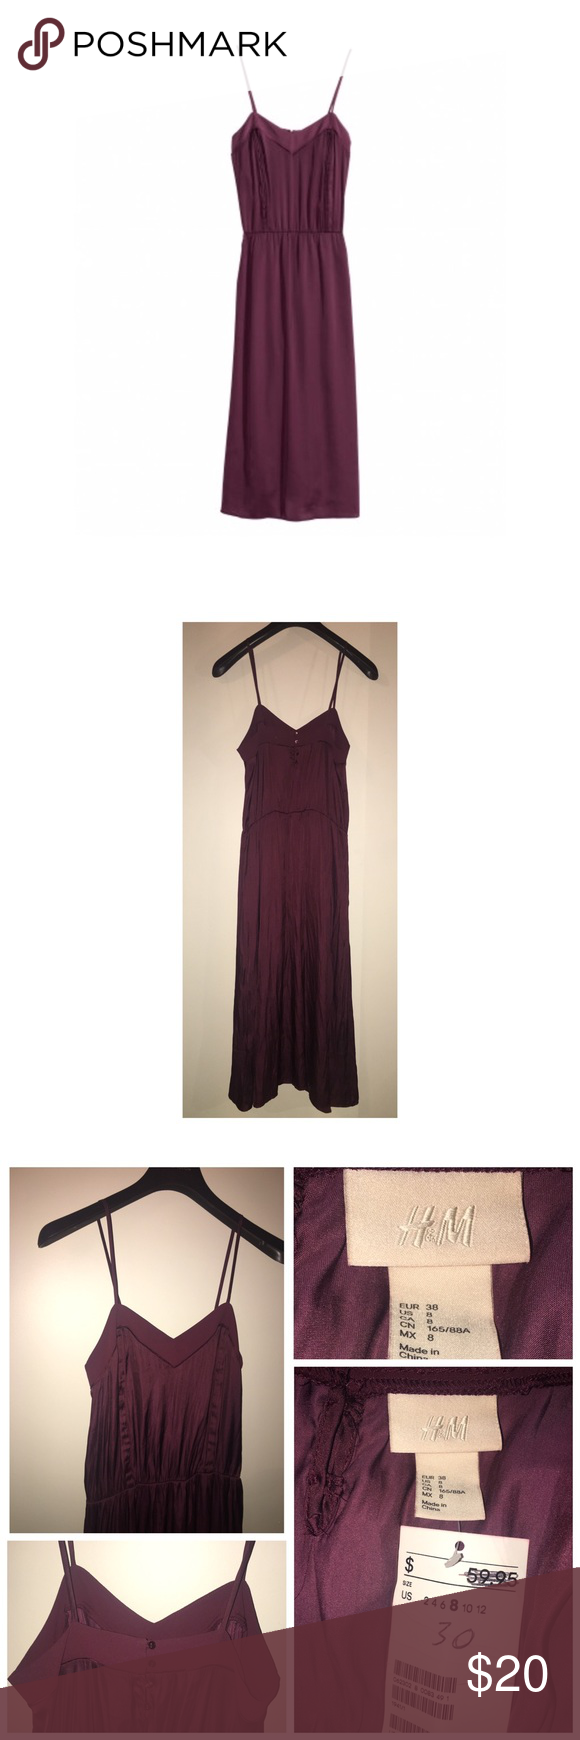 NWT H&M Satin Dress NWT H&M Dress • Size 8 • Calf-length satin dress with narrow shoulder straps. Pin-tucks at front, elasticized seam at waist, and buttons at back. Unlined. DETAILS 100% polyester. H&M Dresses